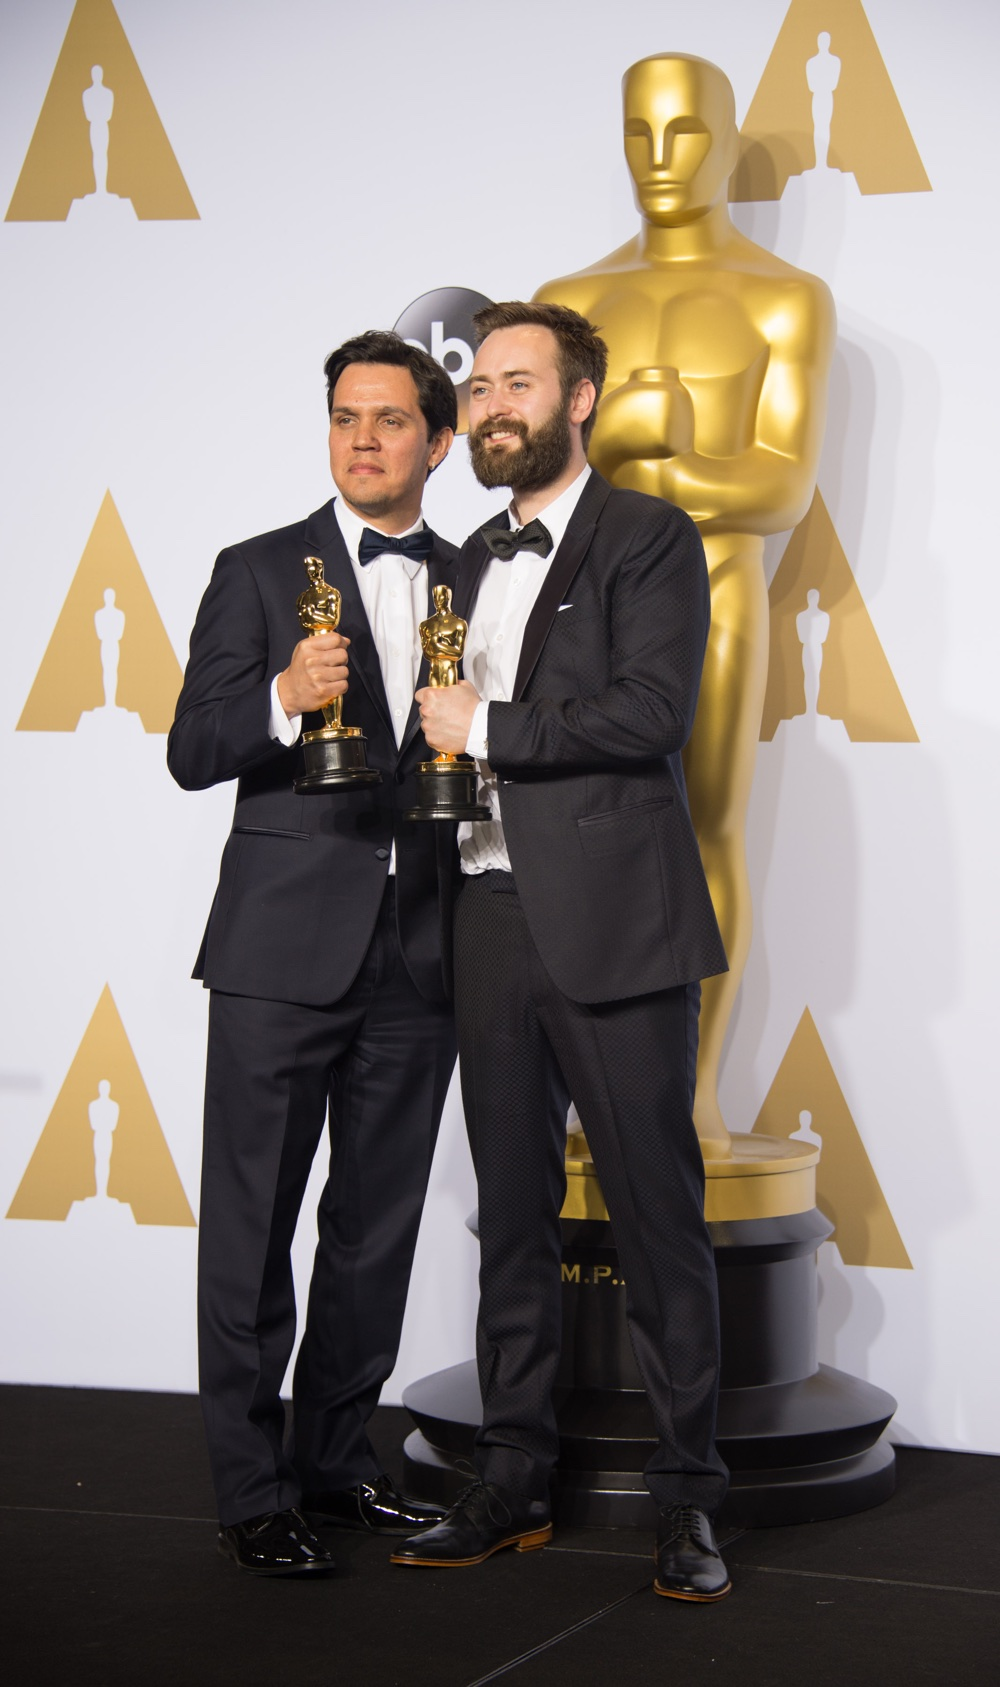 "Shan Christopher Ogilvie and Benjamin Cleary pose backstage with the Oscar® for Best live action short film, for work on ""Stutterer"" during the live ABC Telecast of The 88th Oscars® at the Dolby® Theatre in Hollywood, CA on Sunday, February 28, 2016."